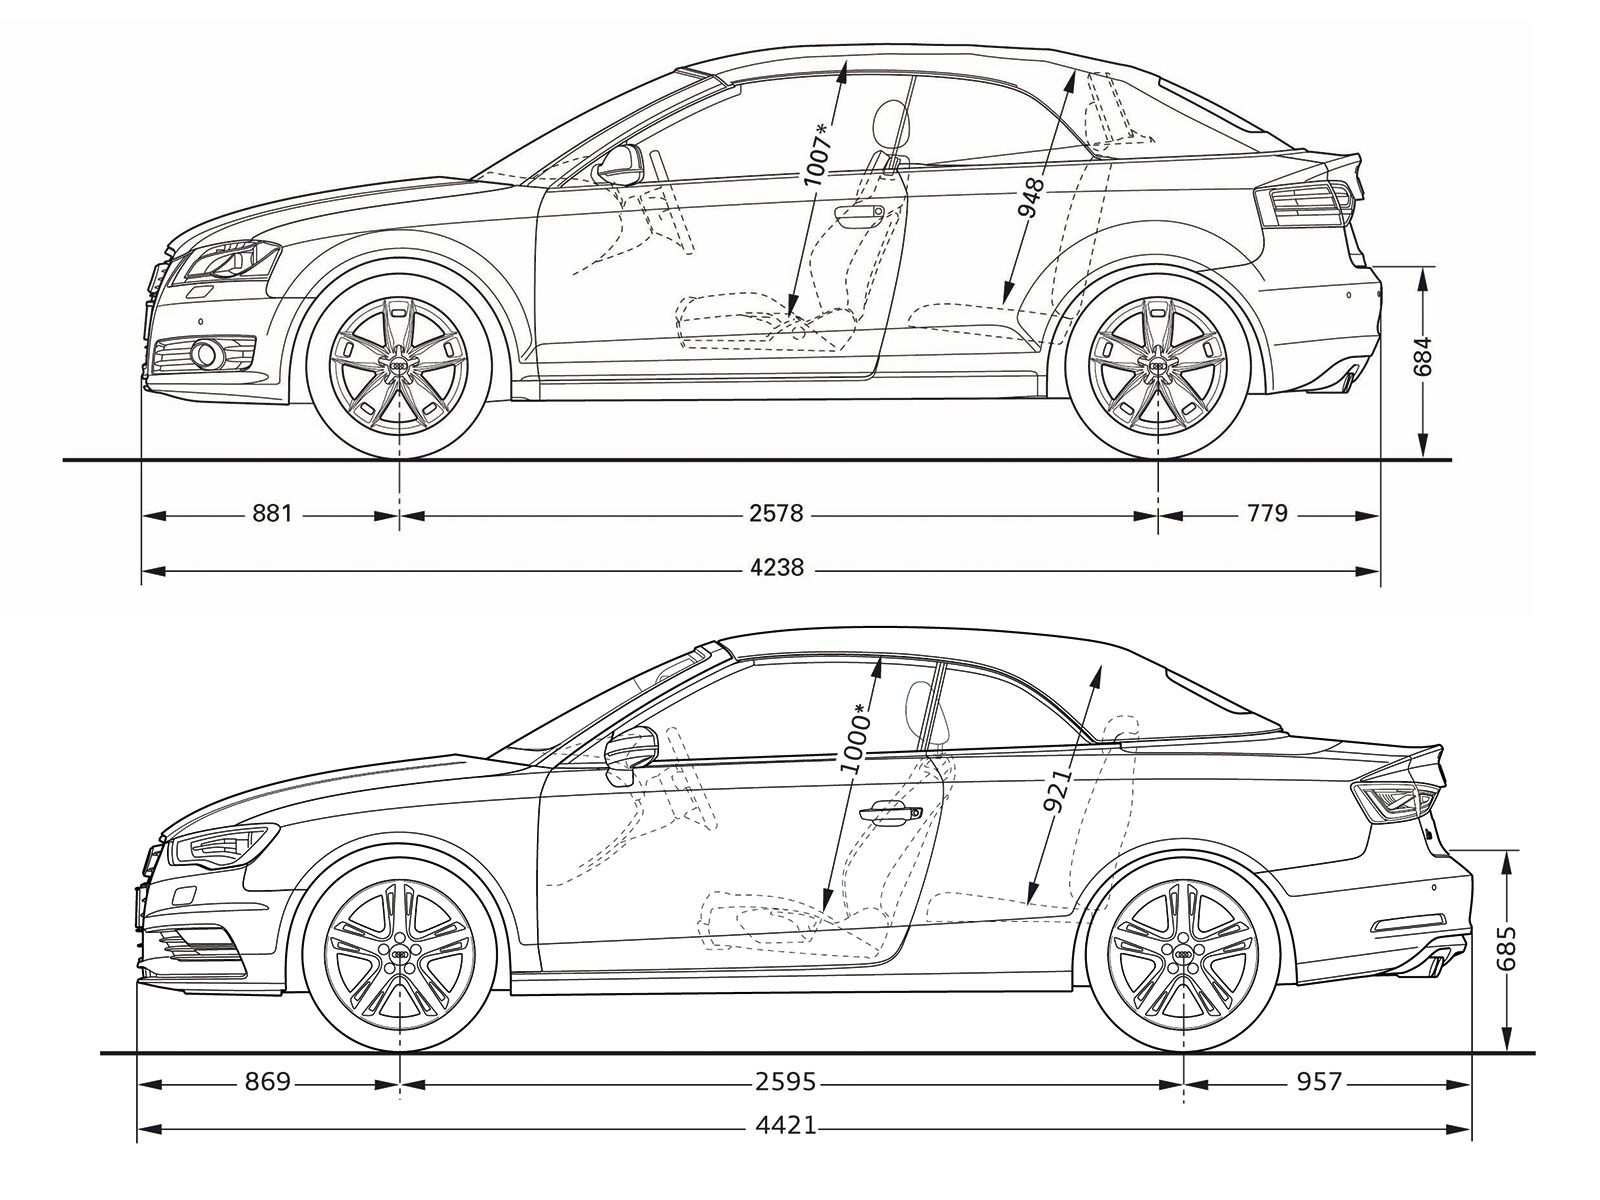 audi a3 cabriolet dimension comparison sketch pinterest audi a3 cabriolet audi a3 and audi. Black Bedroom Furniture Sets. Home Design Ideas